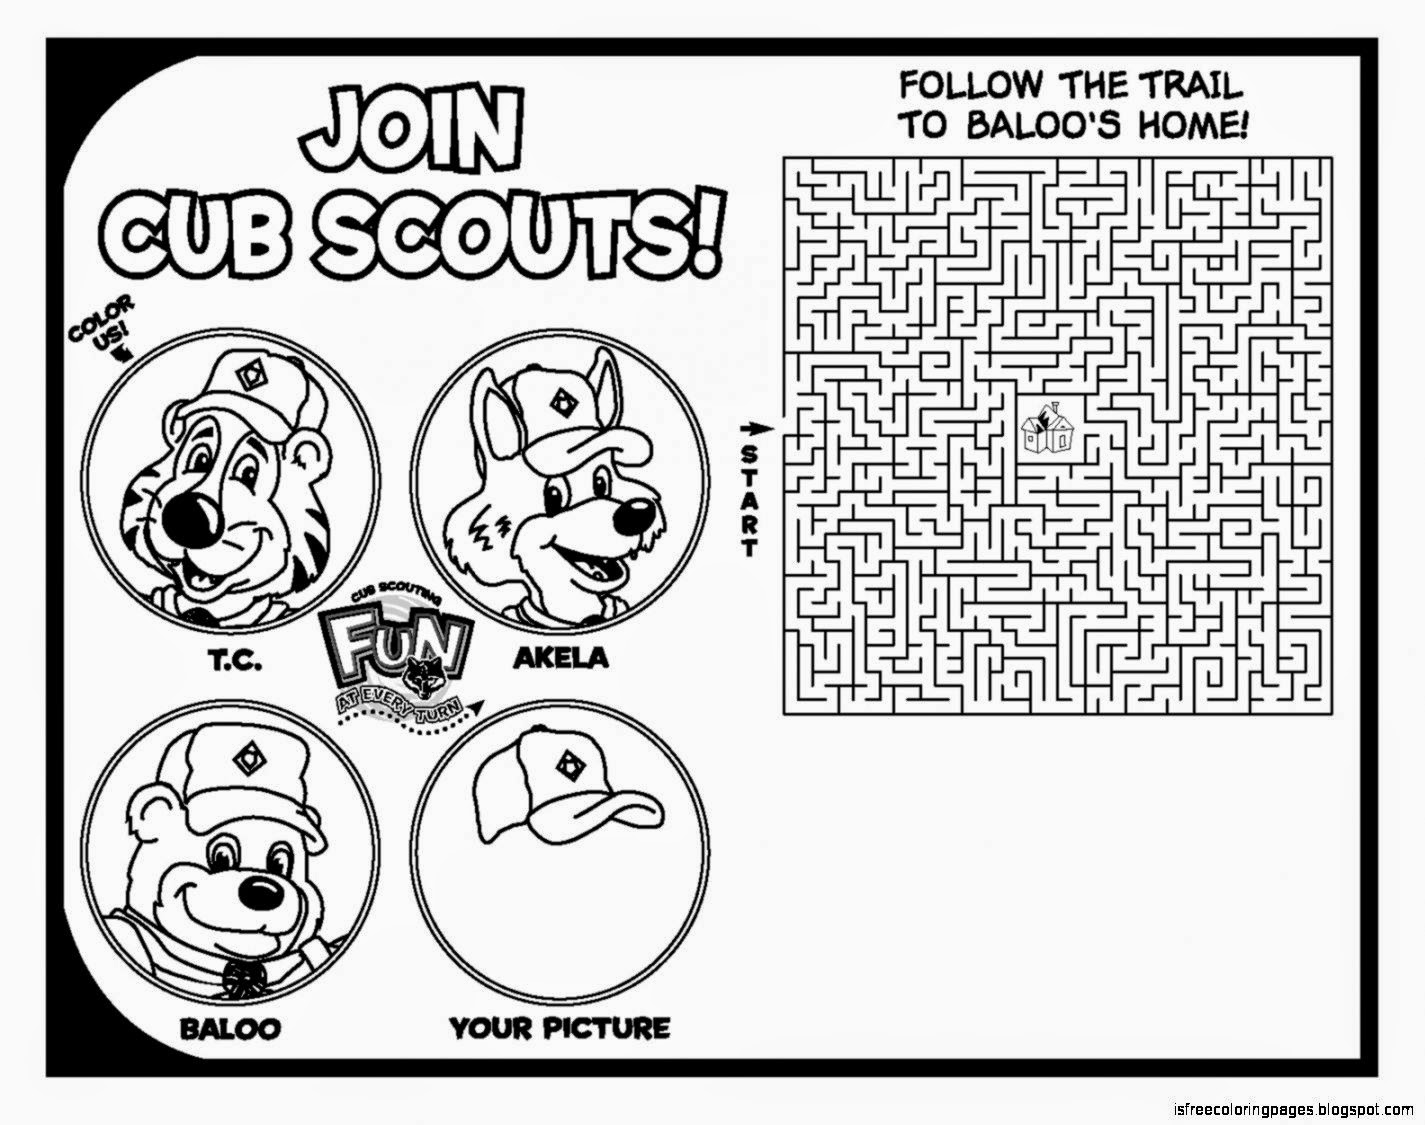 Scouting Coloring Pages | Free Coloring Pages